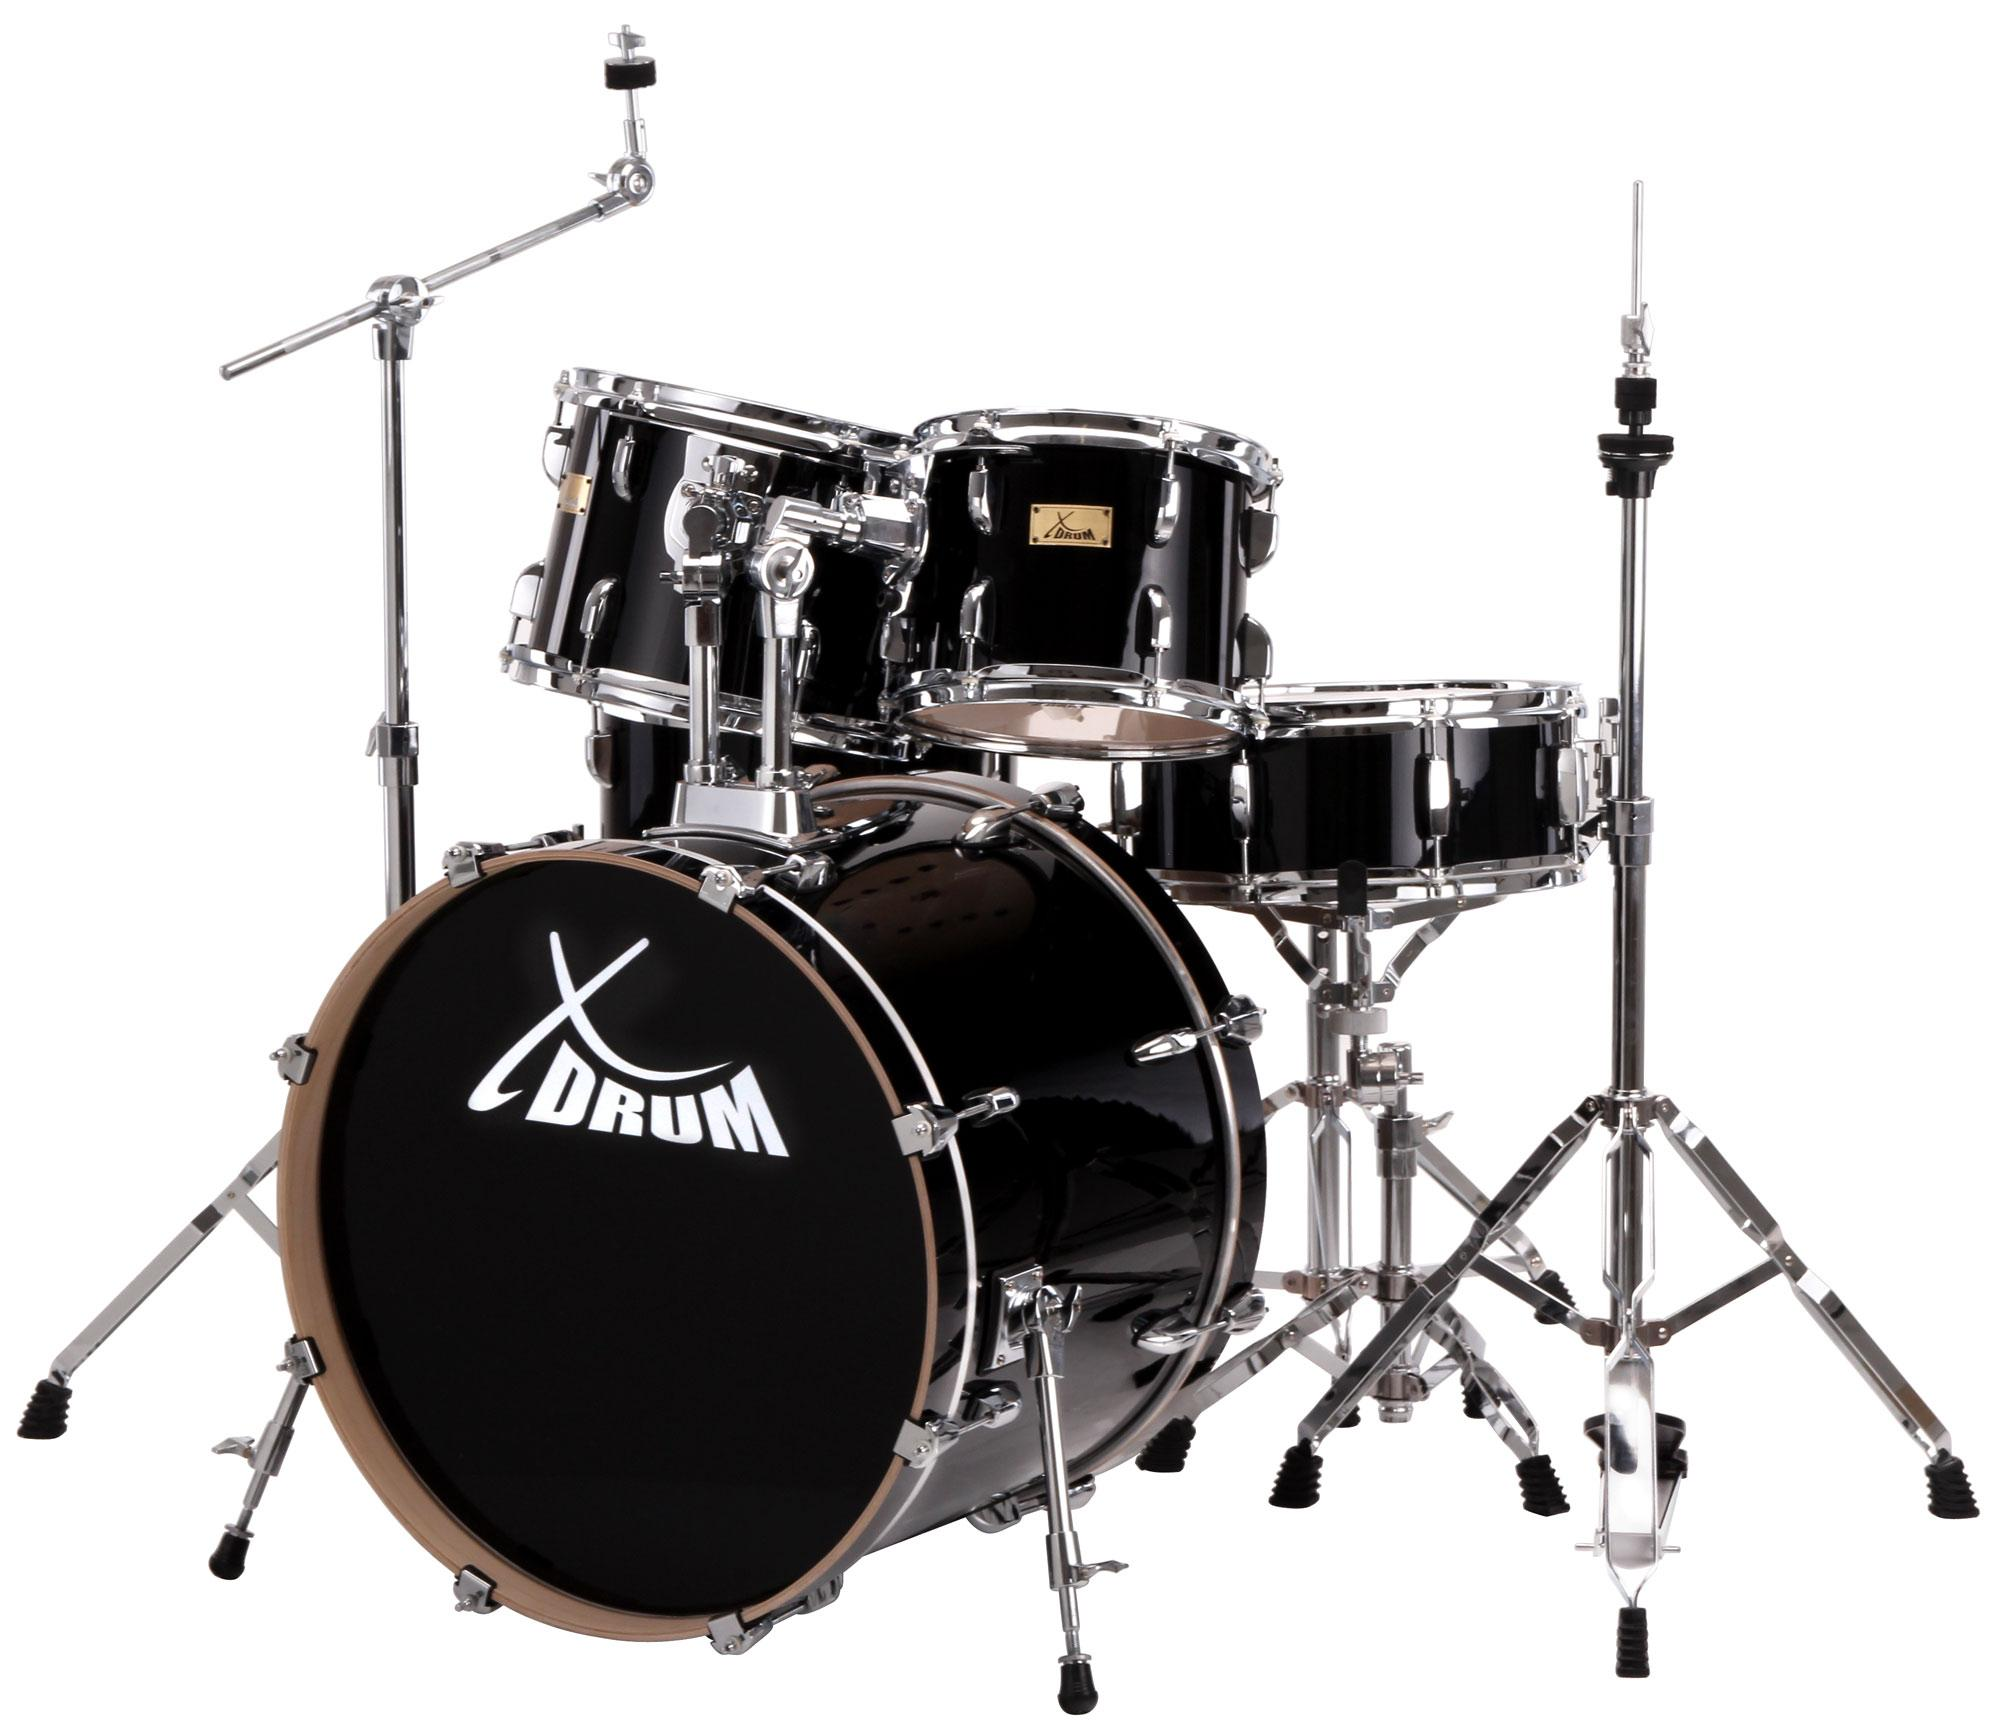 XDrum Stage II Studio Schlagzeug Set Raven Black